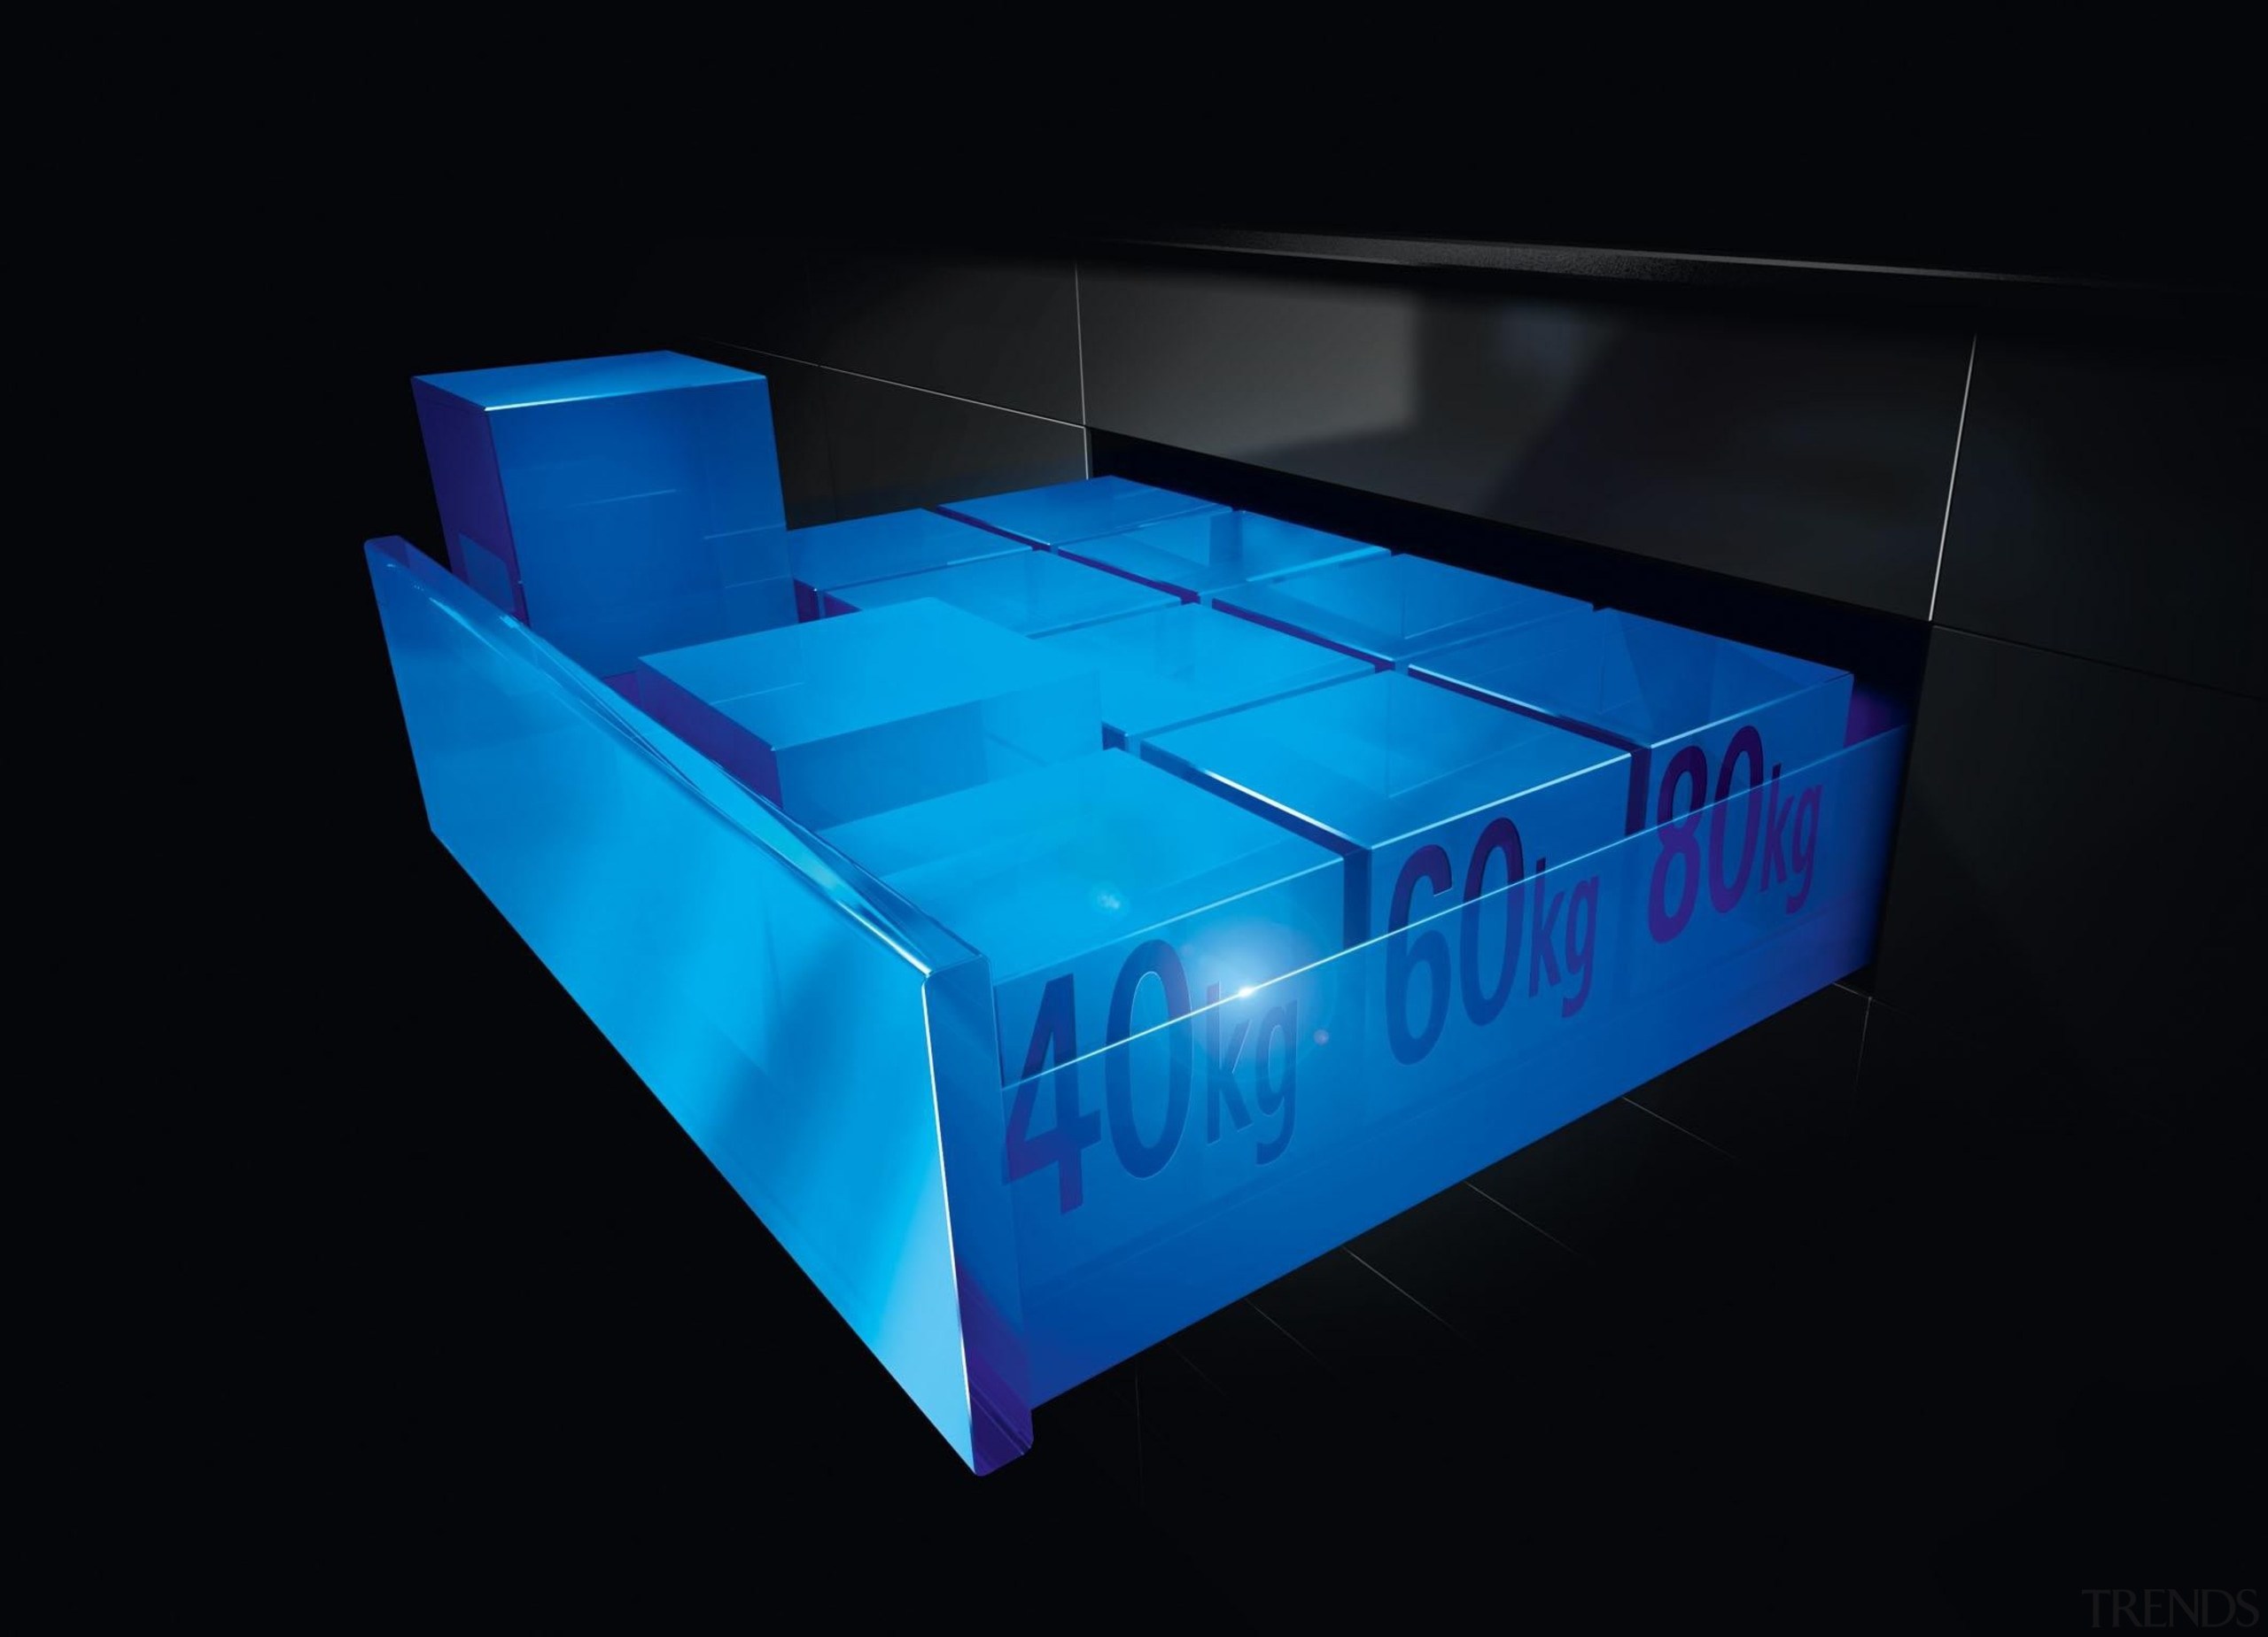 Featuring runners in the 40, 60 and 80 blue, light, plastic, product, product design, table, black